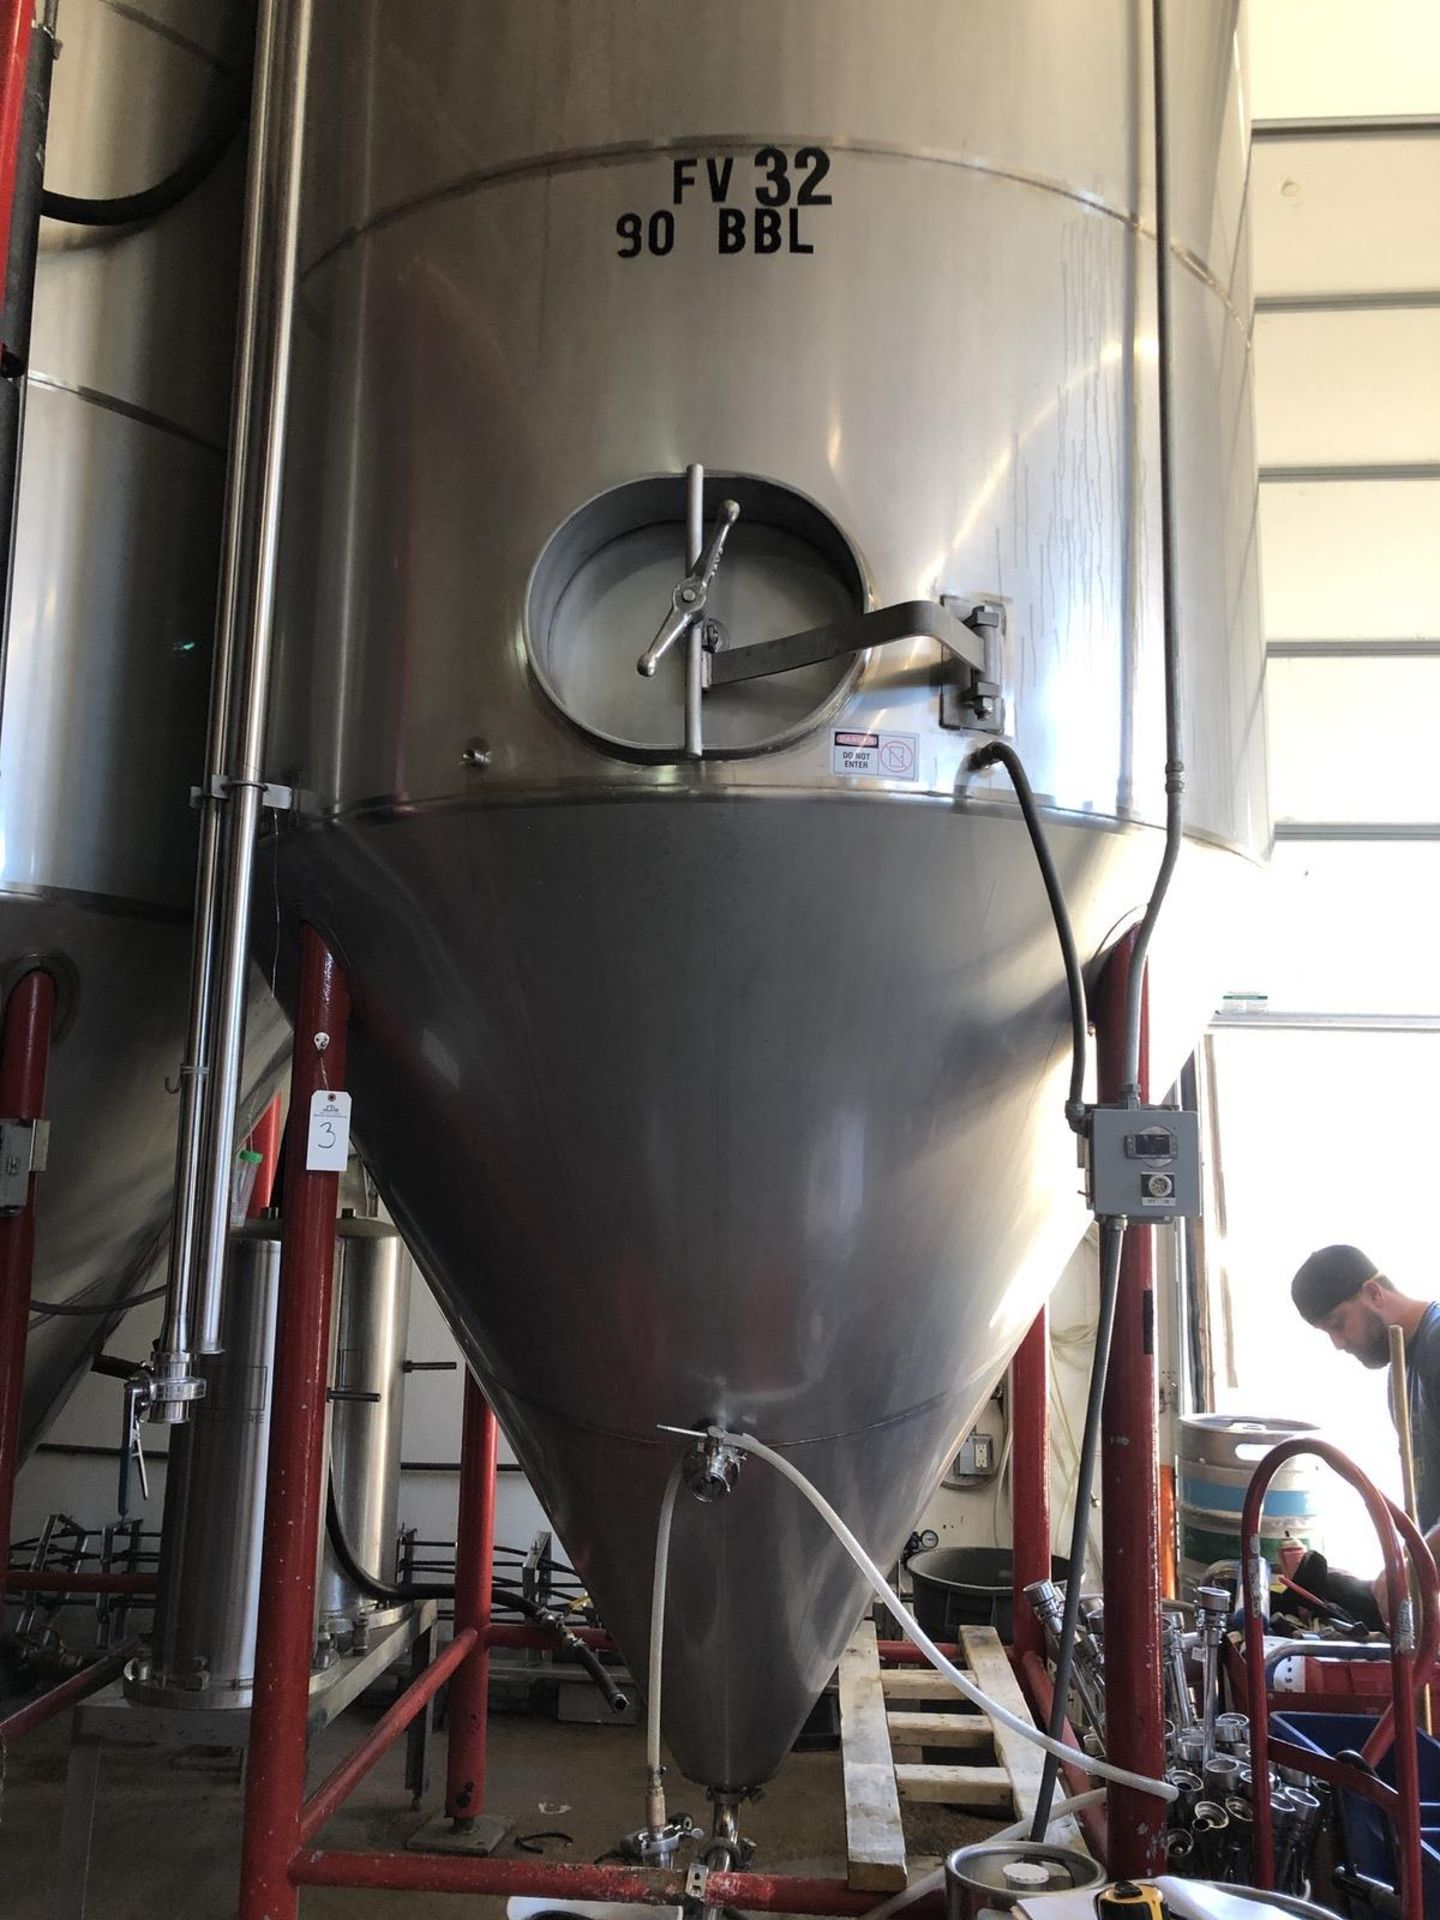 Lot 3 - Santa Rosa 90 BBL Fermenter, Cone Bottom, Glycol Jacketed, Stainless Steel, Approx | Rig Fee: $2500